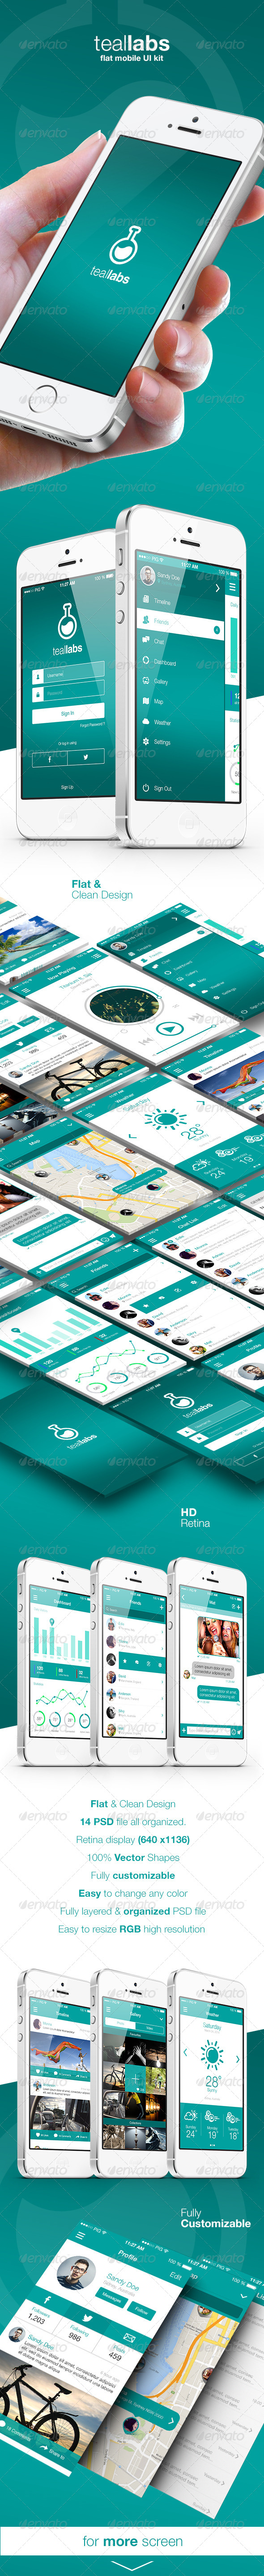 GraphicRiver Teallabs Modern & Cool Teal Flat Mobile UI Kit 7590574